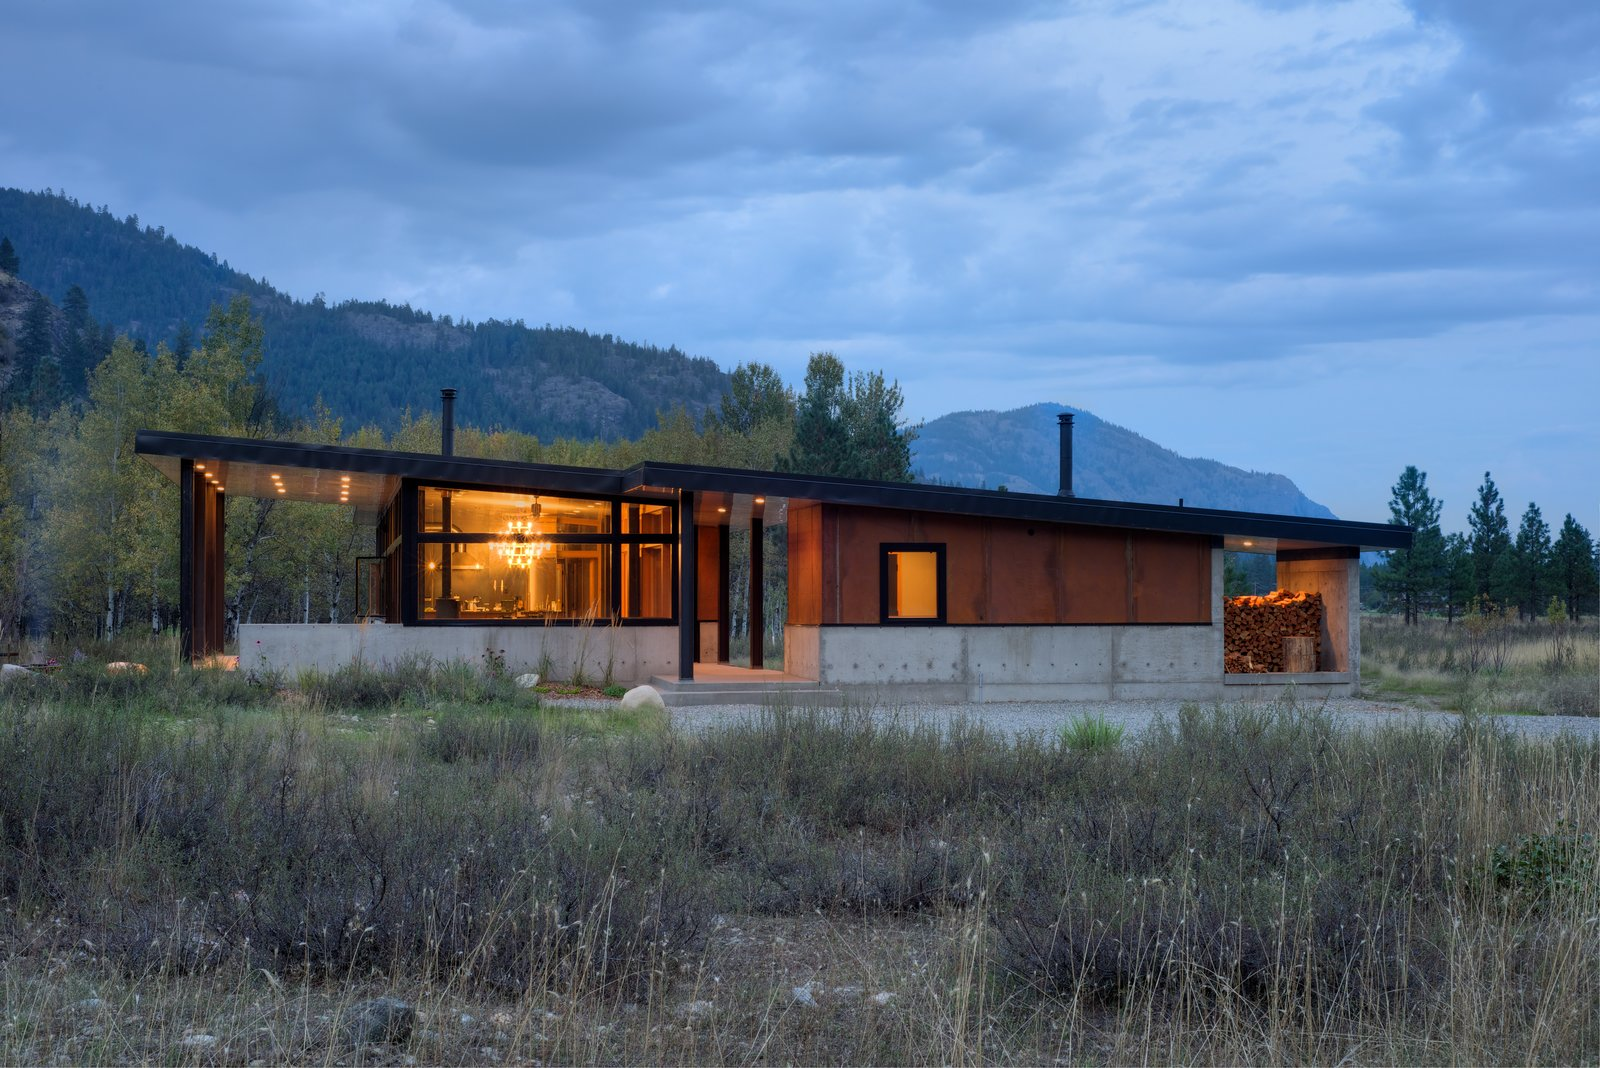 The house is divided in two: on the left, the main house consists of an expansive kitchen, living, and dining space, plus sleeping accommodations. On the right, a smaller structure holds a sauna, shower, and ski wax room. The house's length is oriented along an east/west axis to maximize strong southern light and provide views of an aspen grove.  Cabins & Hideouts by Stephen Blake from Modern Mountain Retreat in Washington